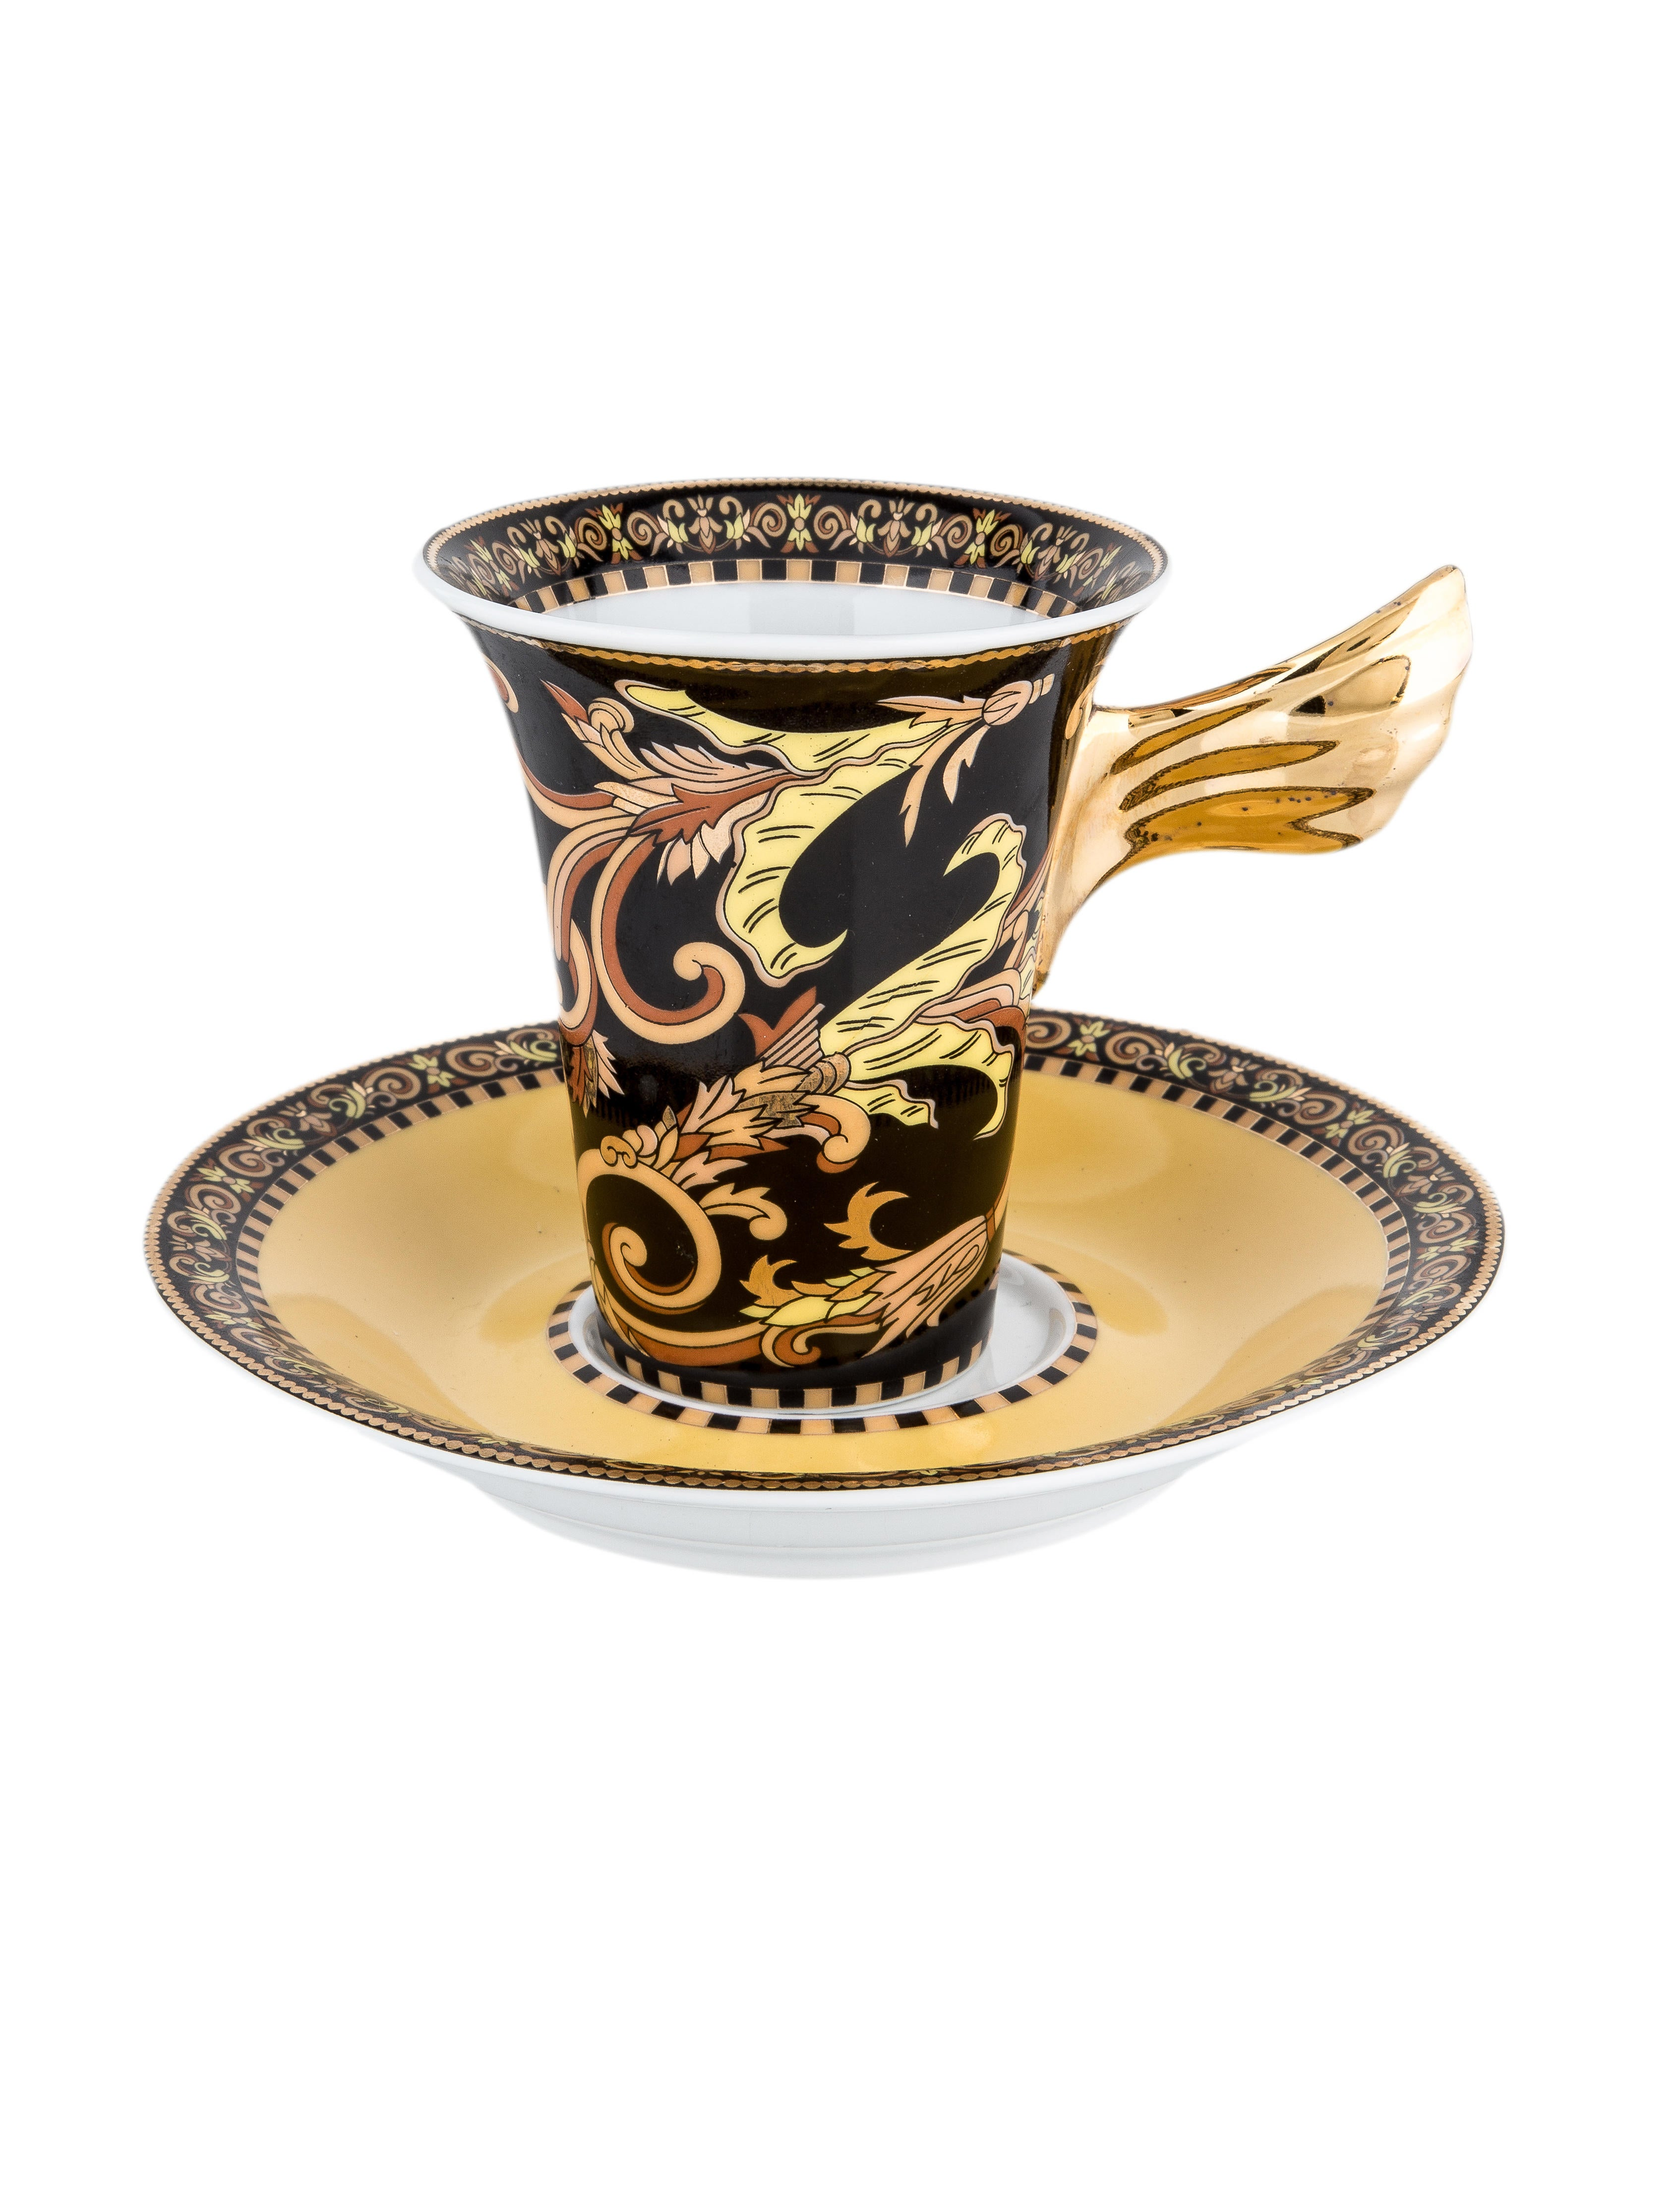 10 Piece Ultimate Brush Collection: Rosenthal Meets Versace 10-Piece Barocco Demitasse Service